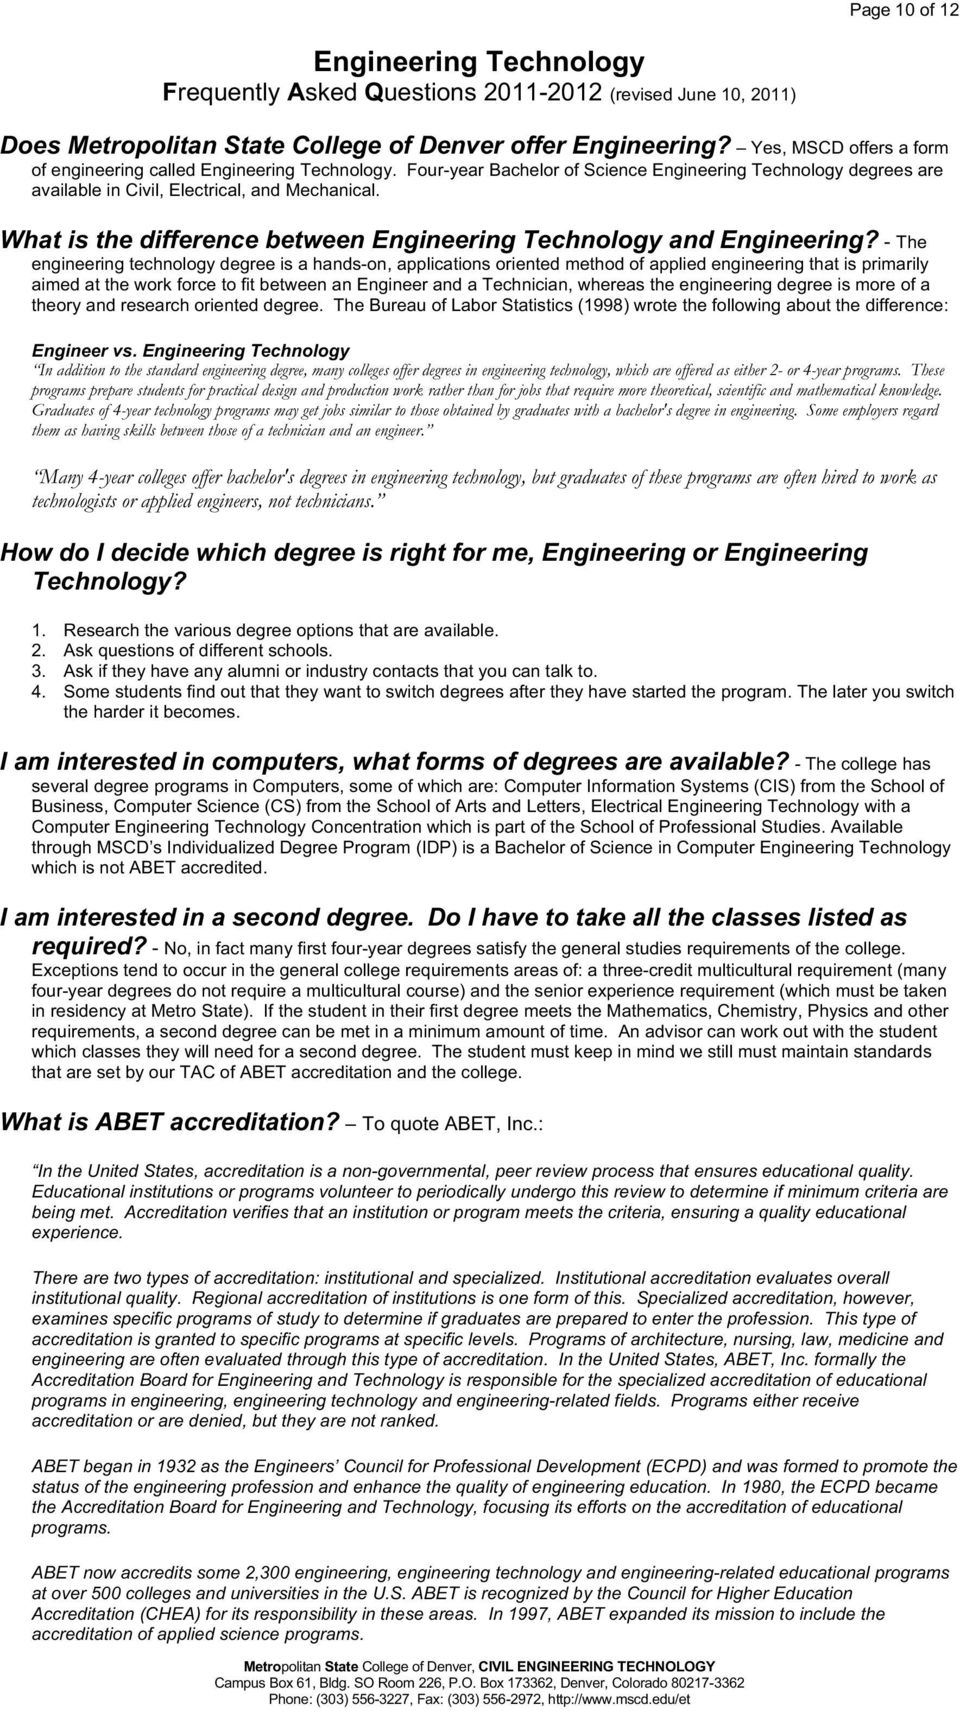 What is the difference between Engineering Technology and Engineering?